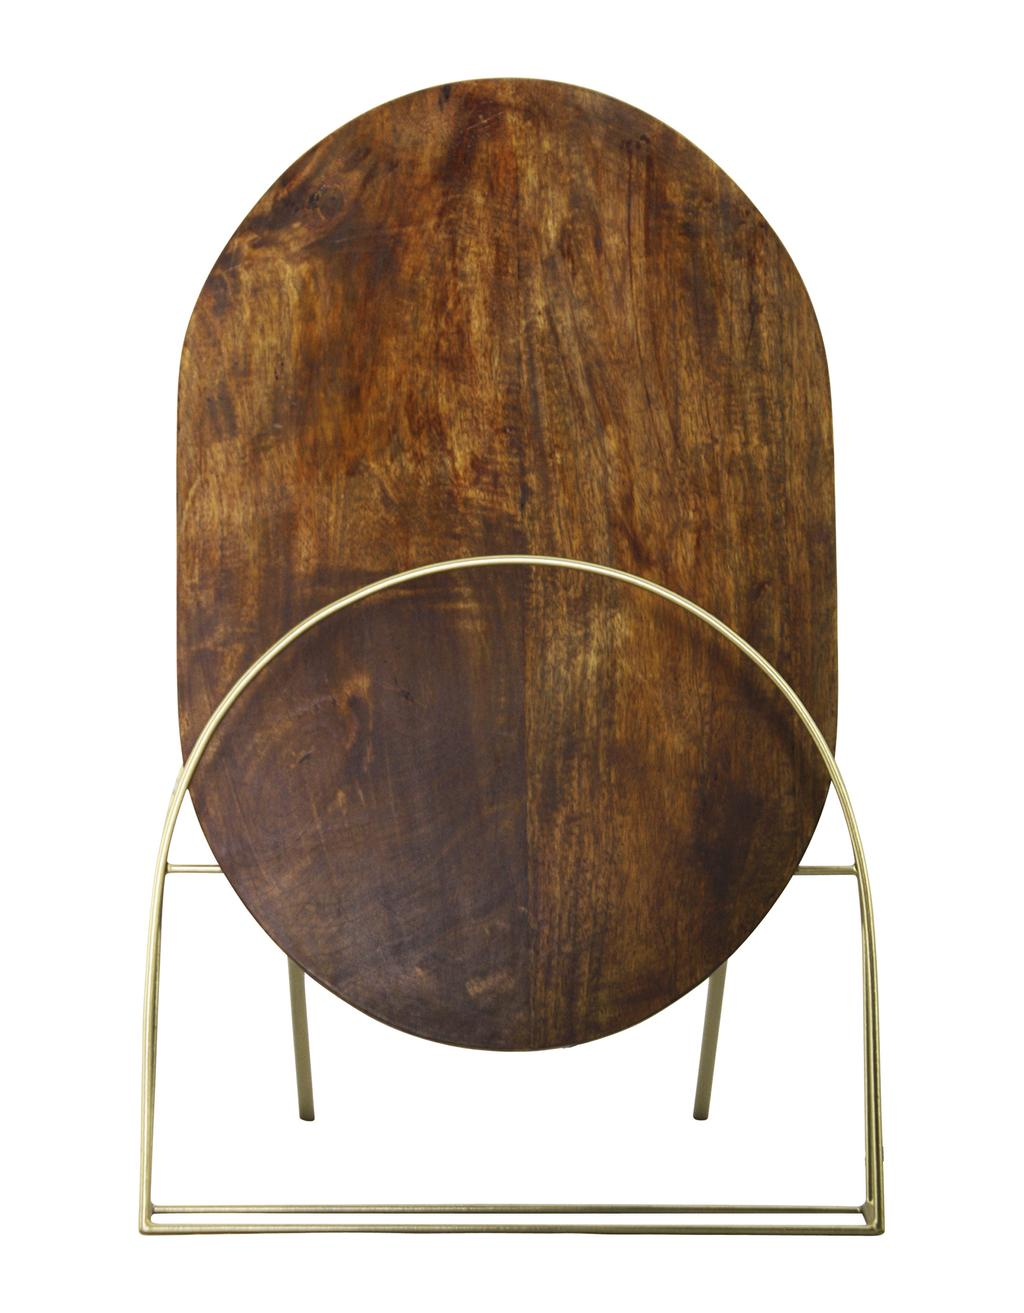 Lampe de table Pelly, en laiton et bois naturel de manguier, 269,99 $ chez La Baie